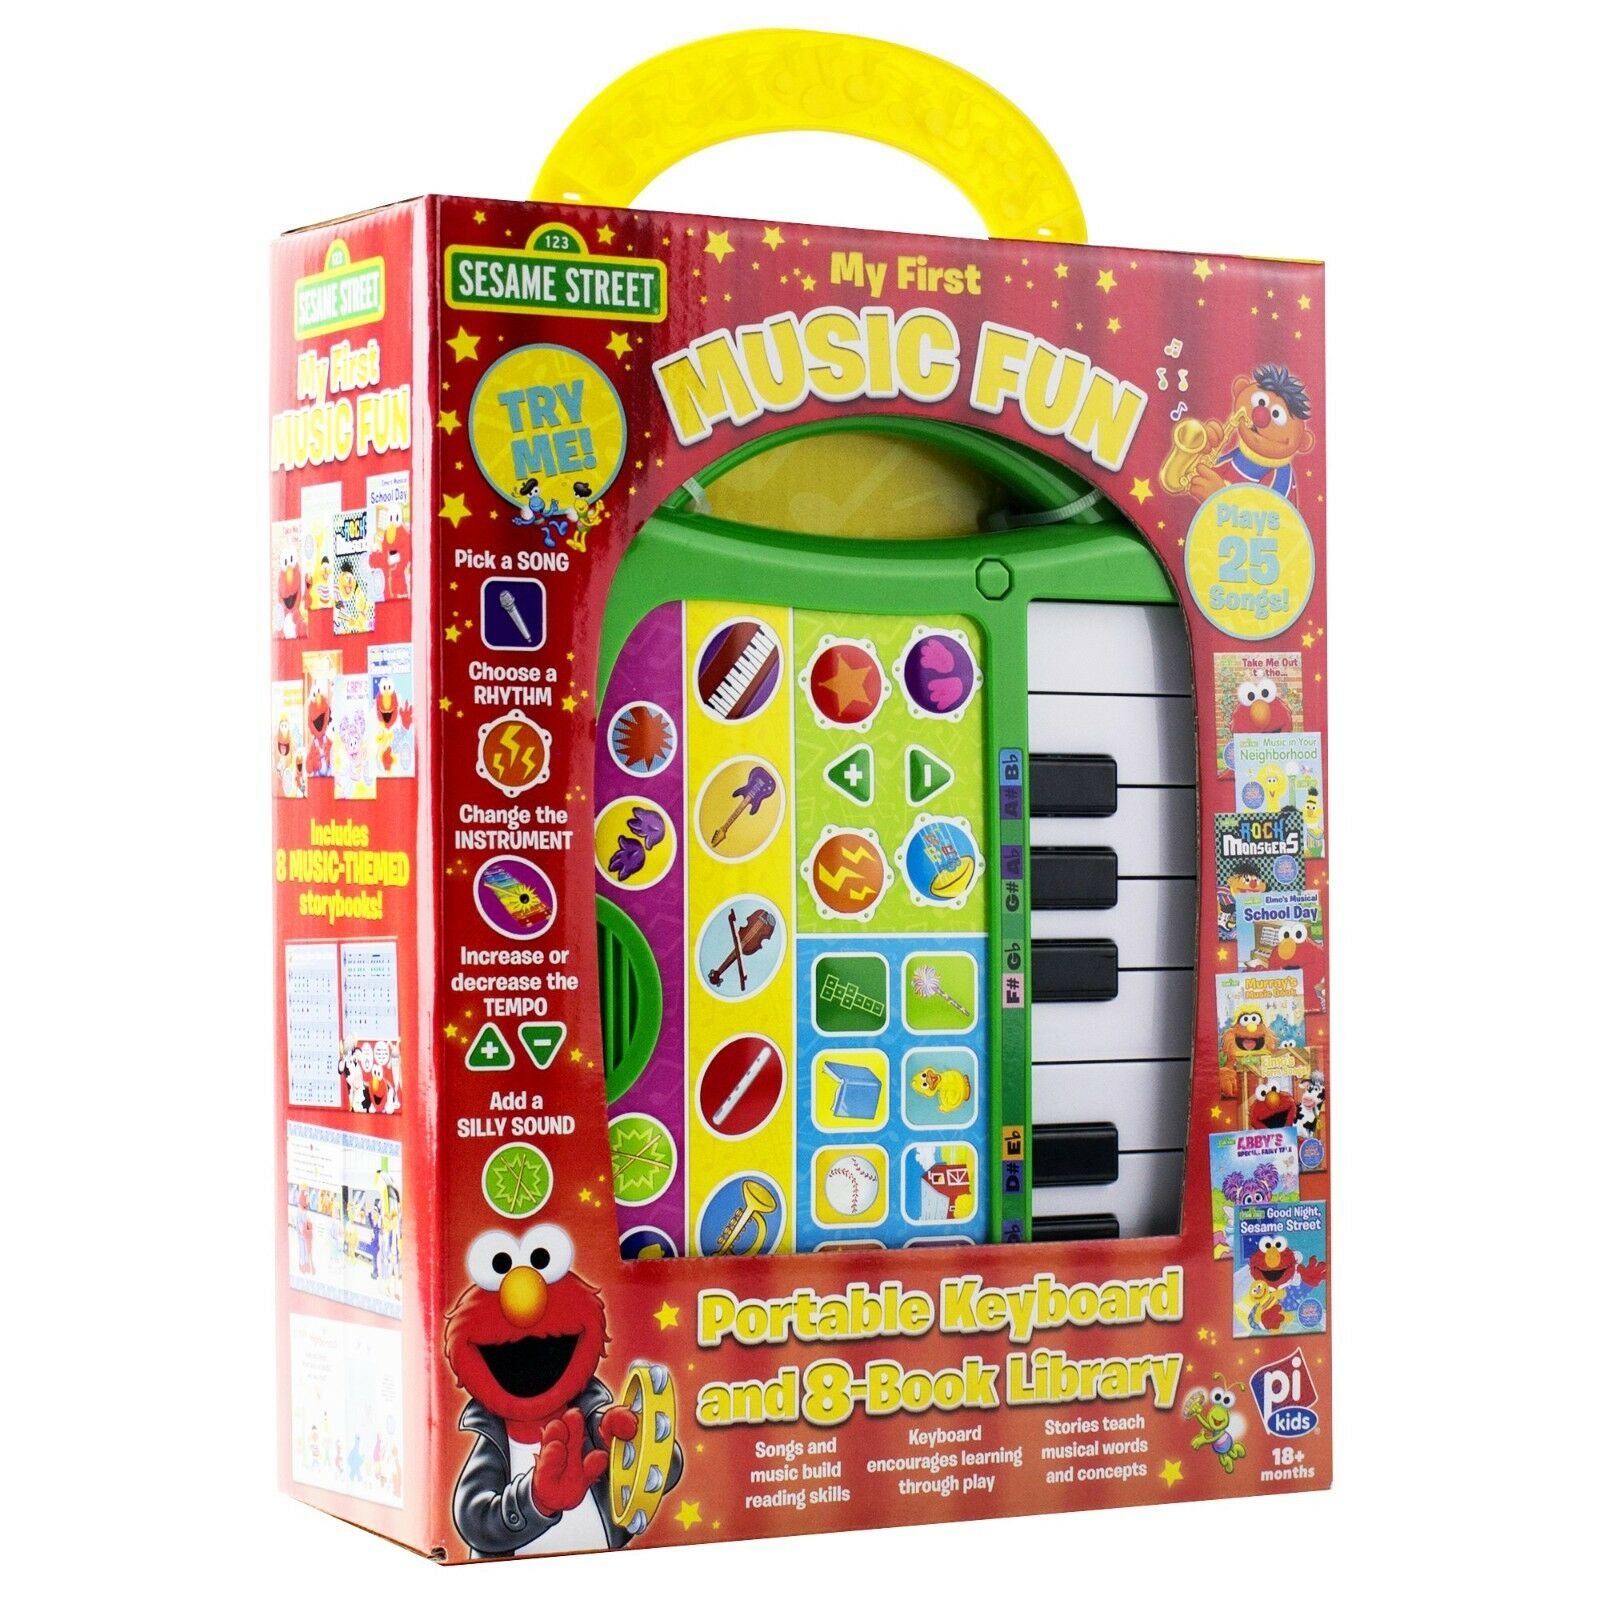 NEW Sesame Street My First Music Fun Portable Keyboard 8 Books Library Activity